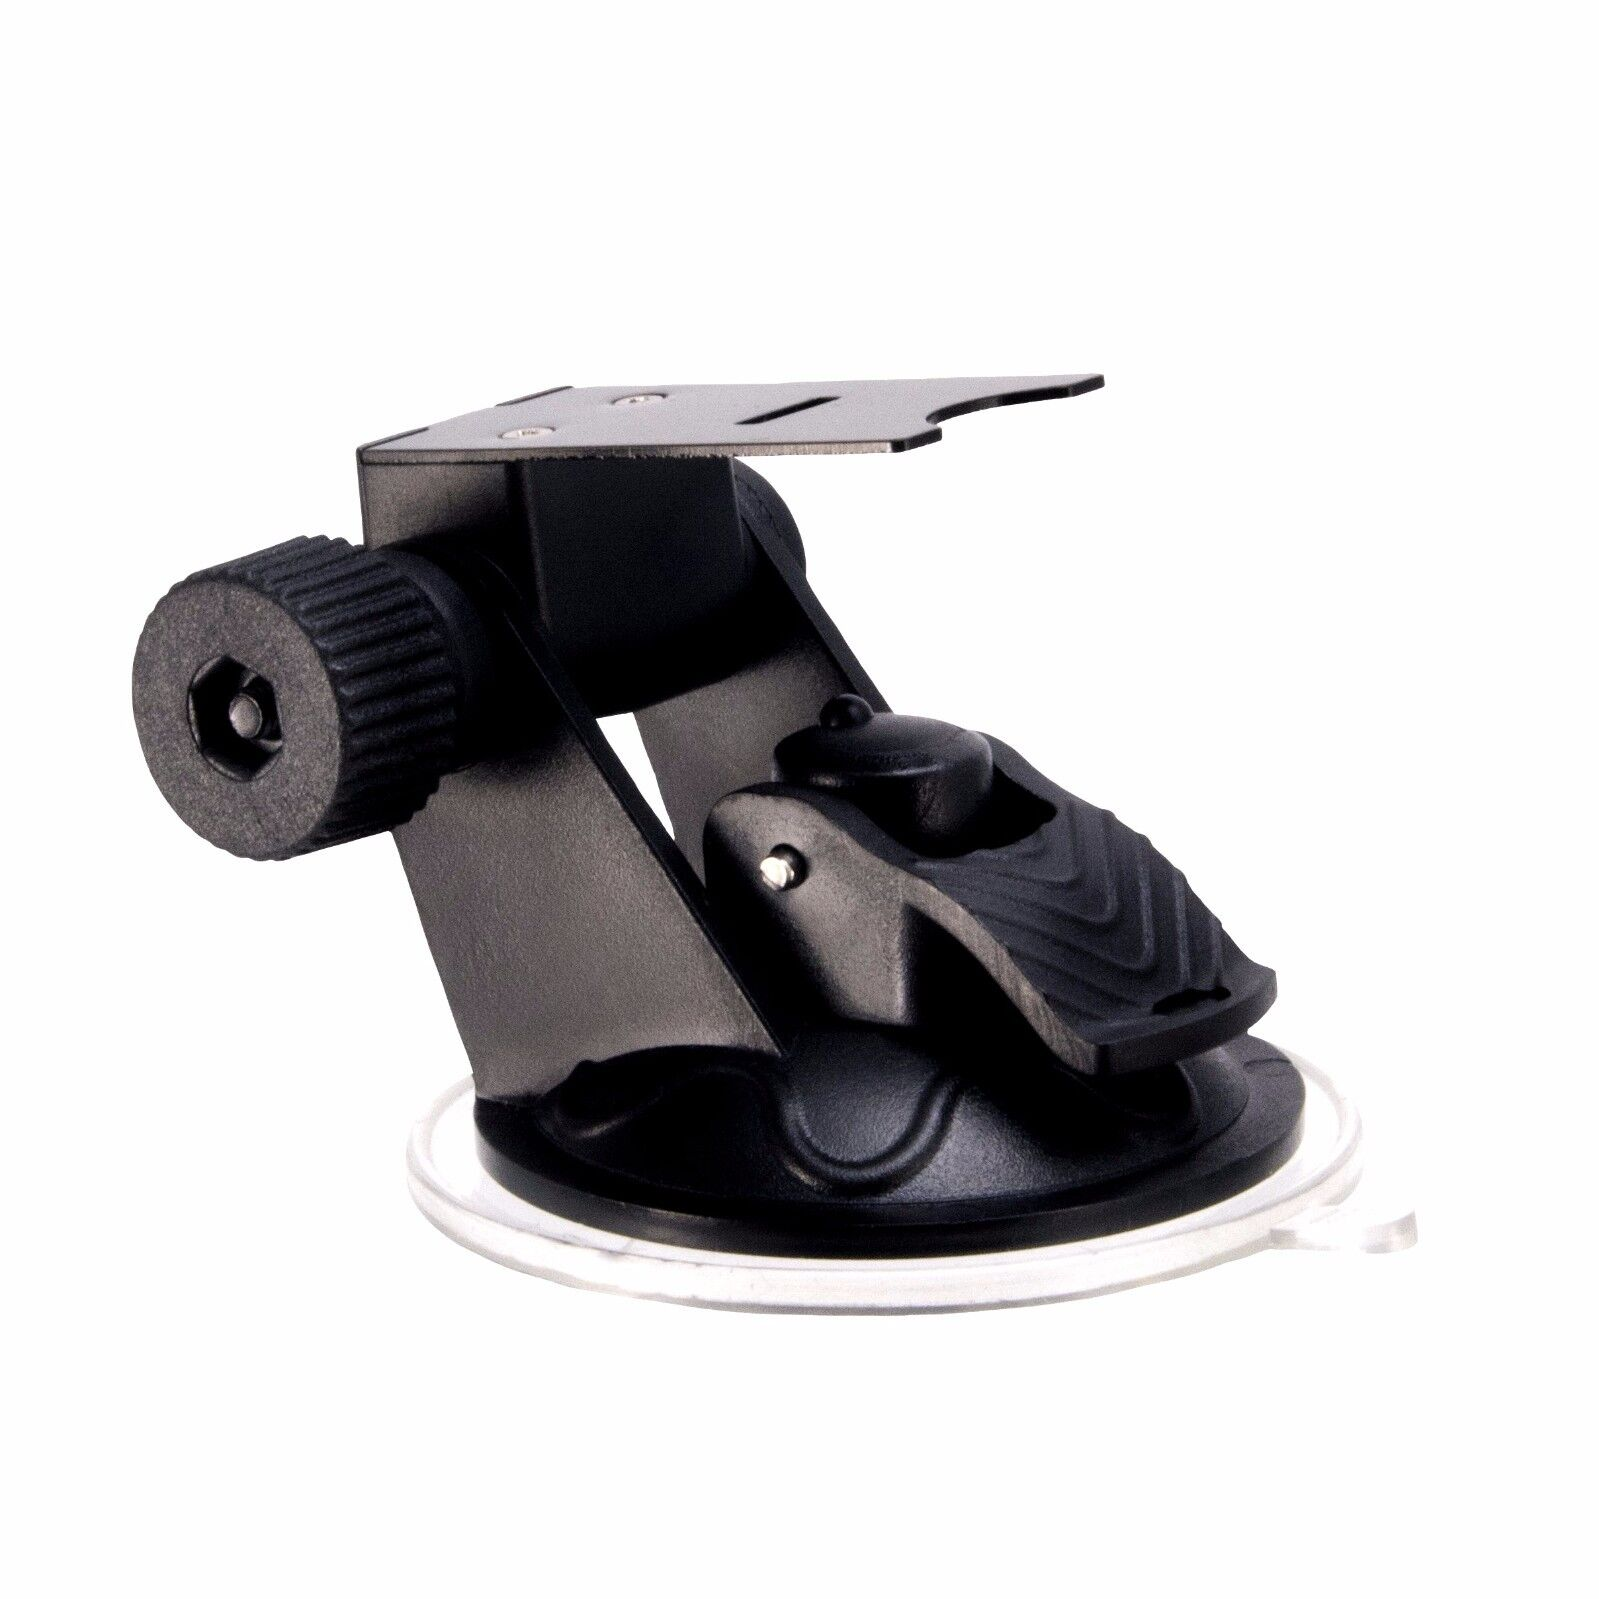 Car Windshield Suction Cup Mount For Escort Passport X70 S55 Disco Automotive 8635 Gm Ford Nissan Wire Harness Pigtail Kit Redline Solo S3